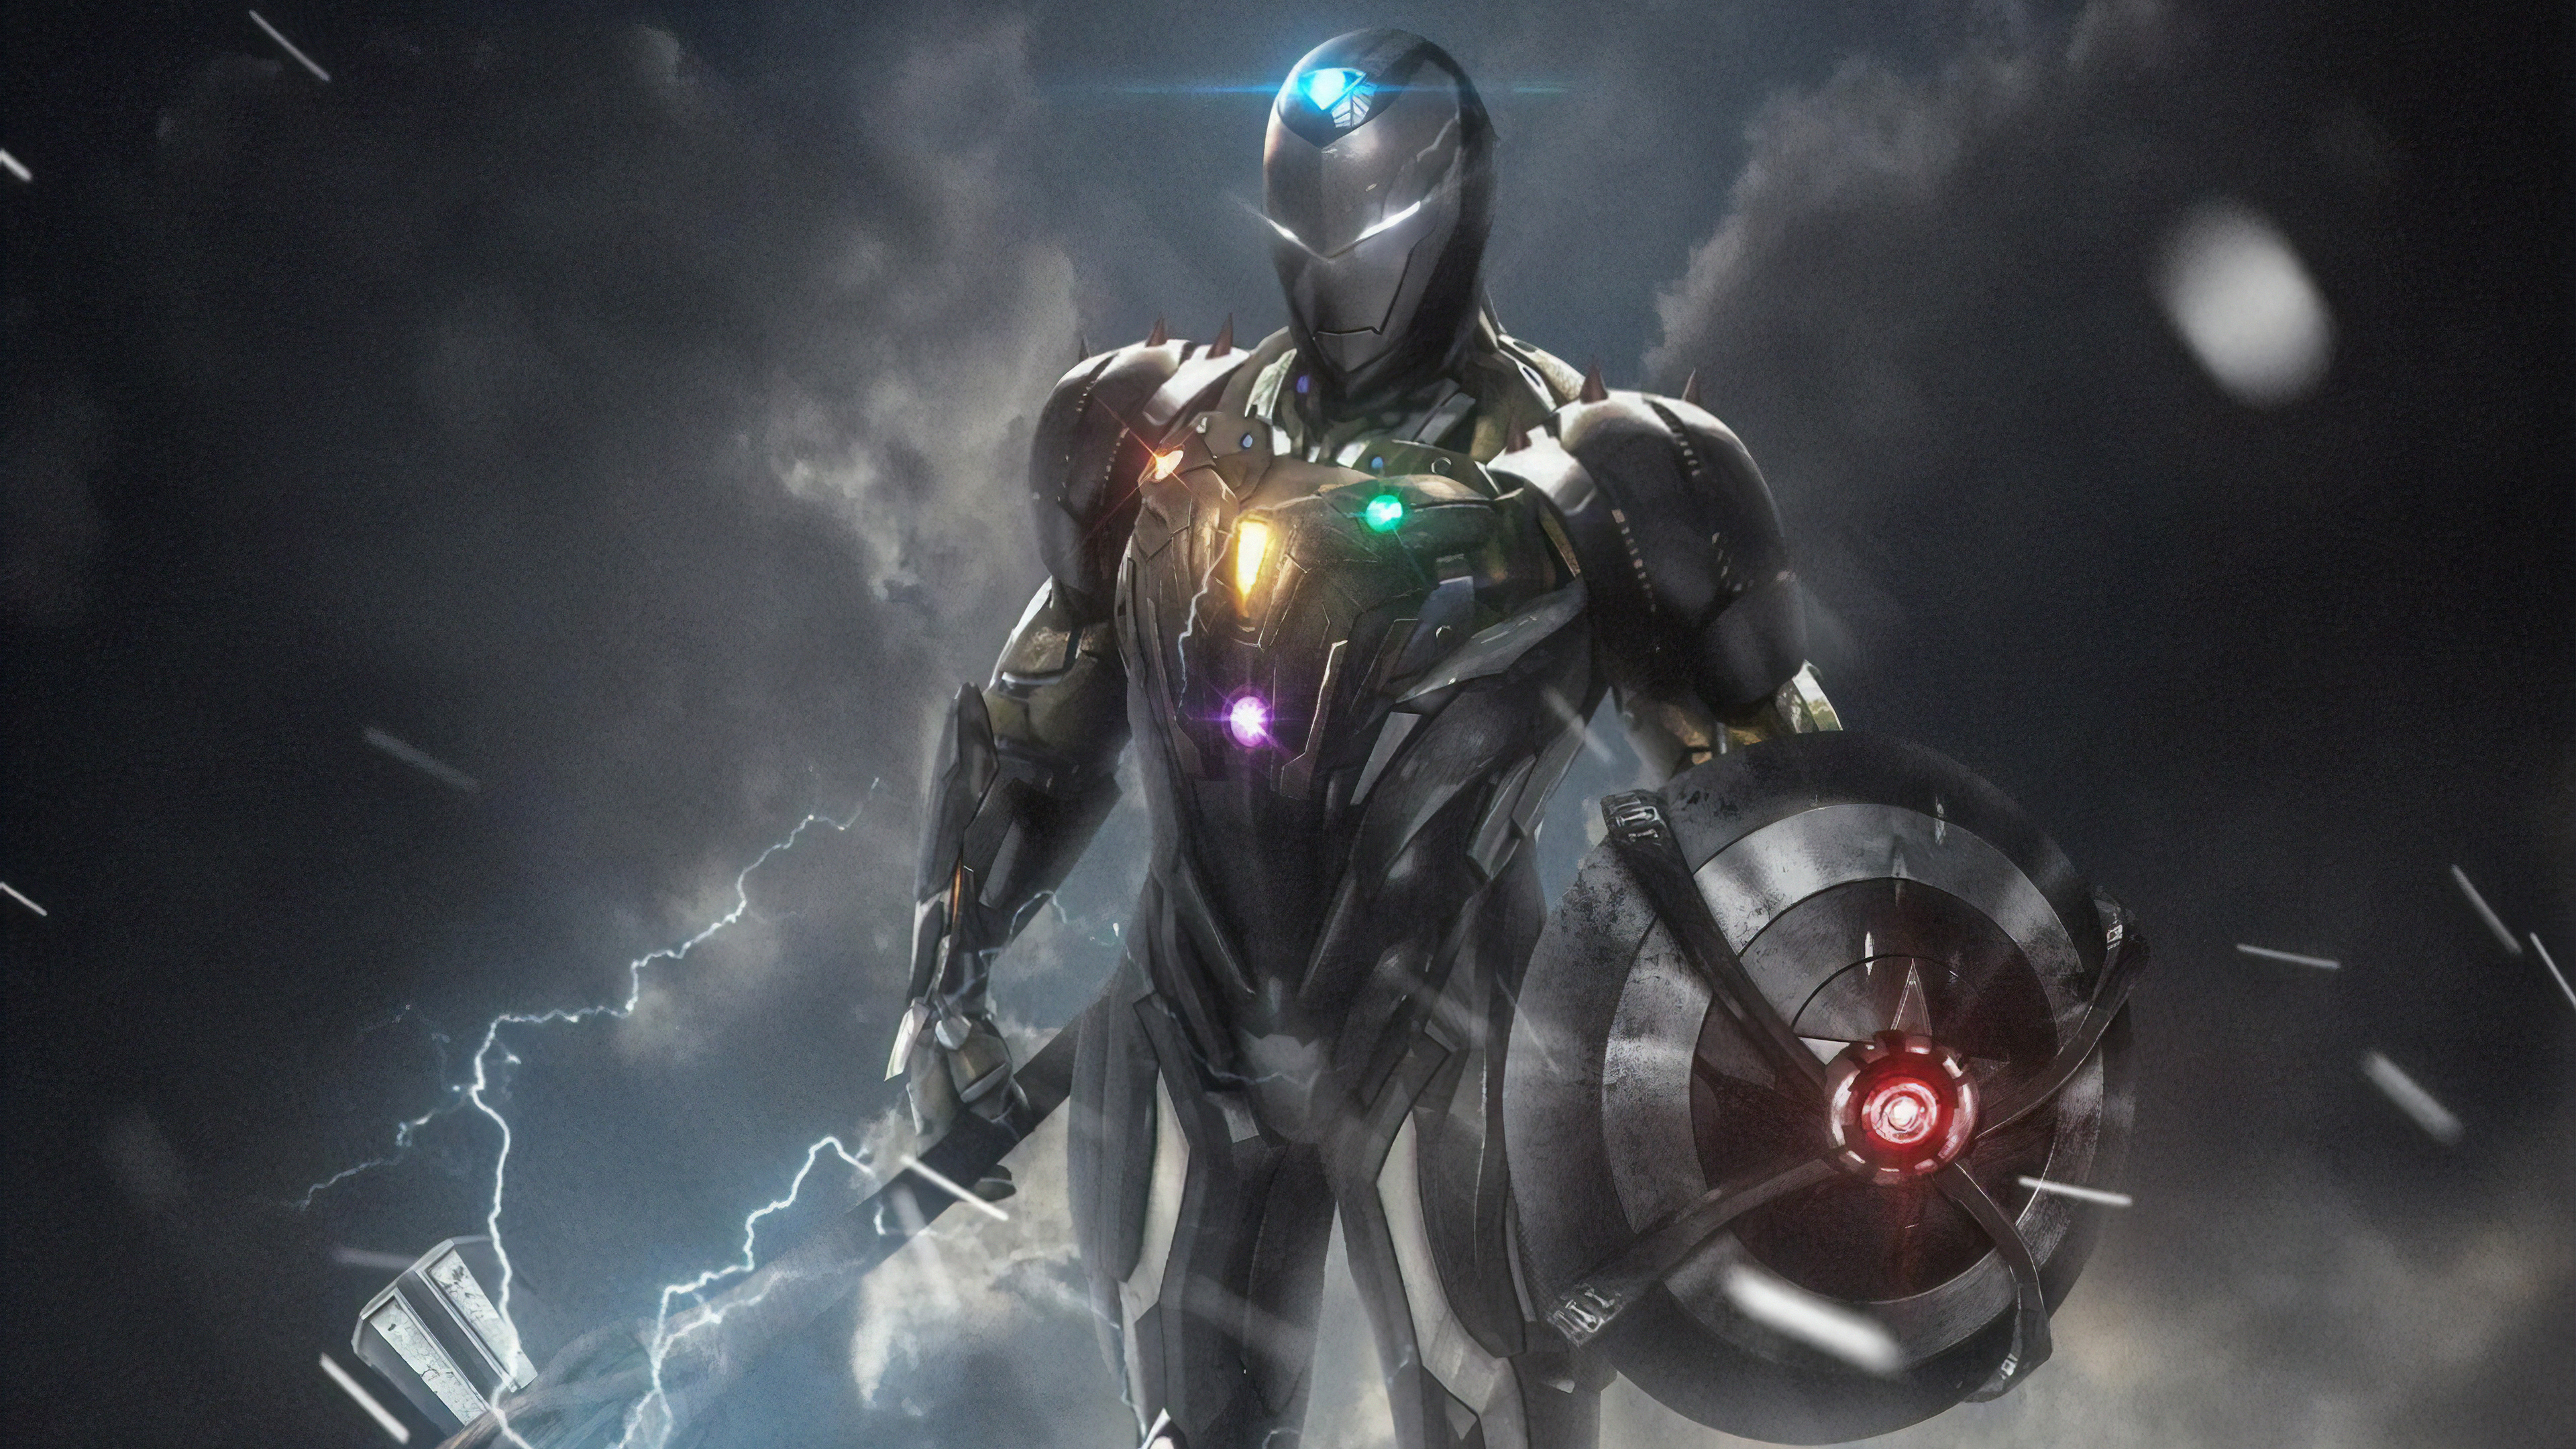 iron man digital 1565053942 - Iron Man Digital - superheroes wallpapers, iron man wallpapers, hd-wallpapers, digital art wallpapers, artwork wallpapers, 4k-wallpapers